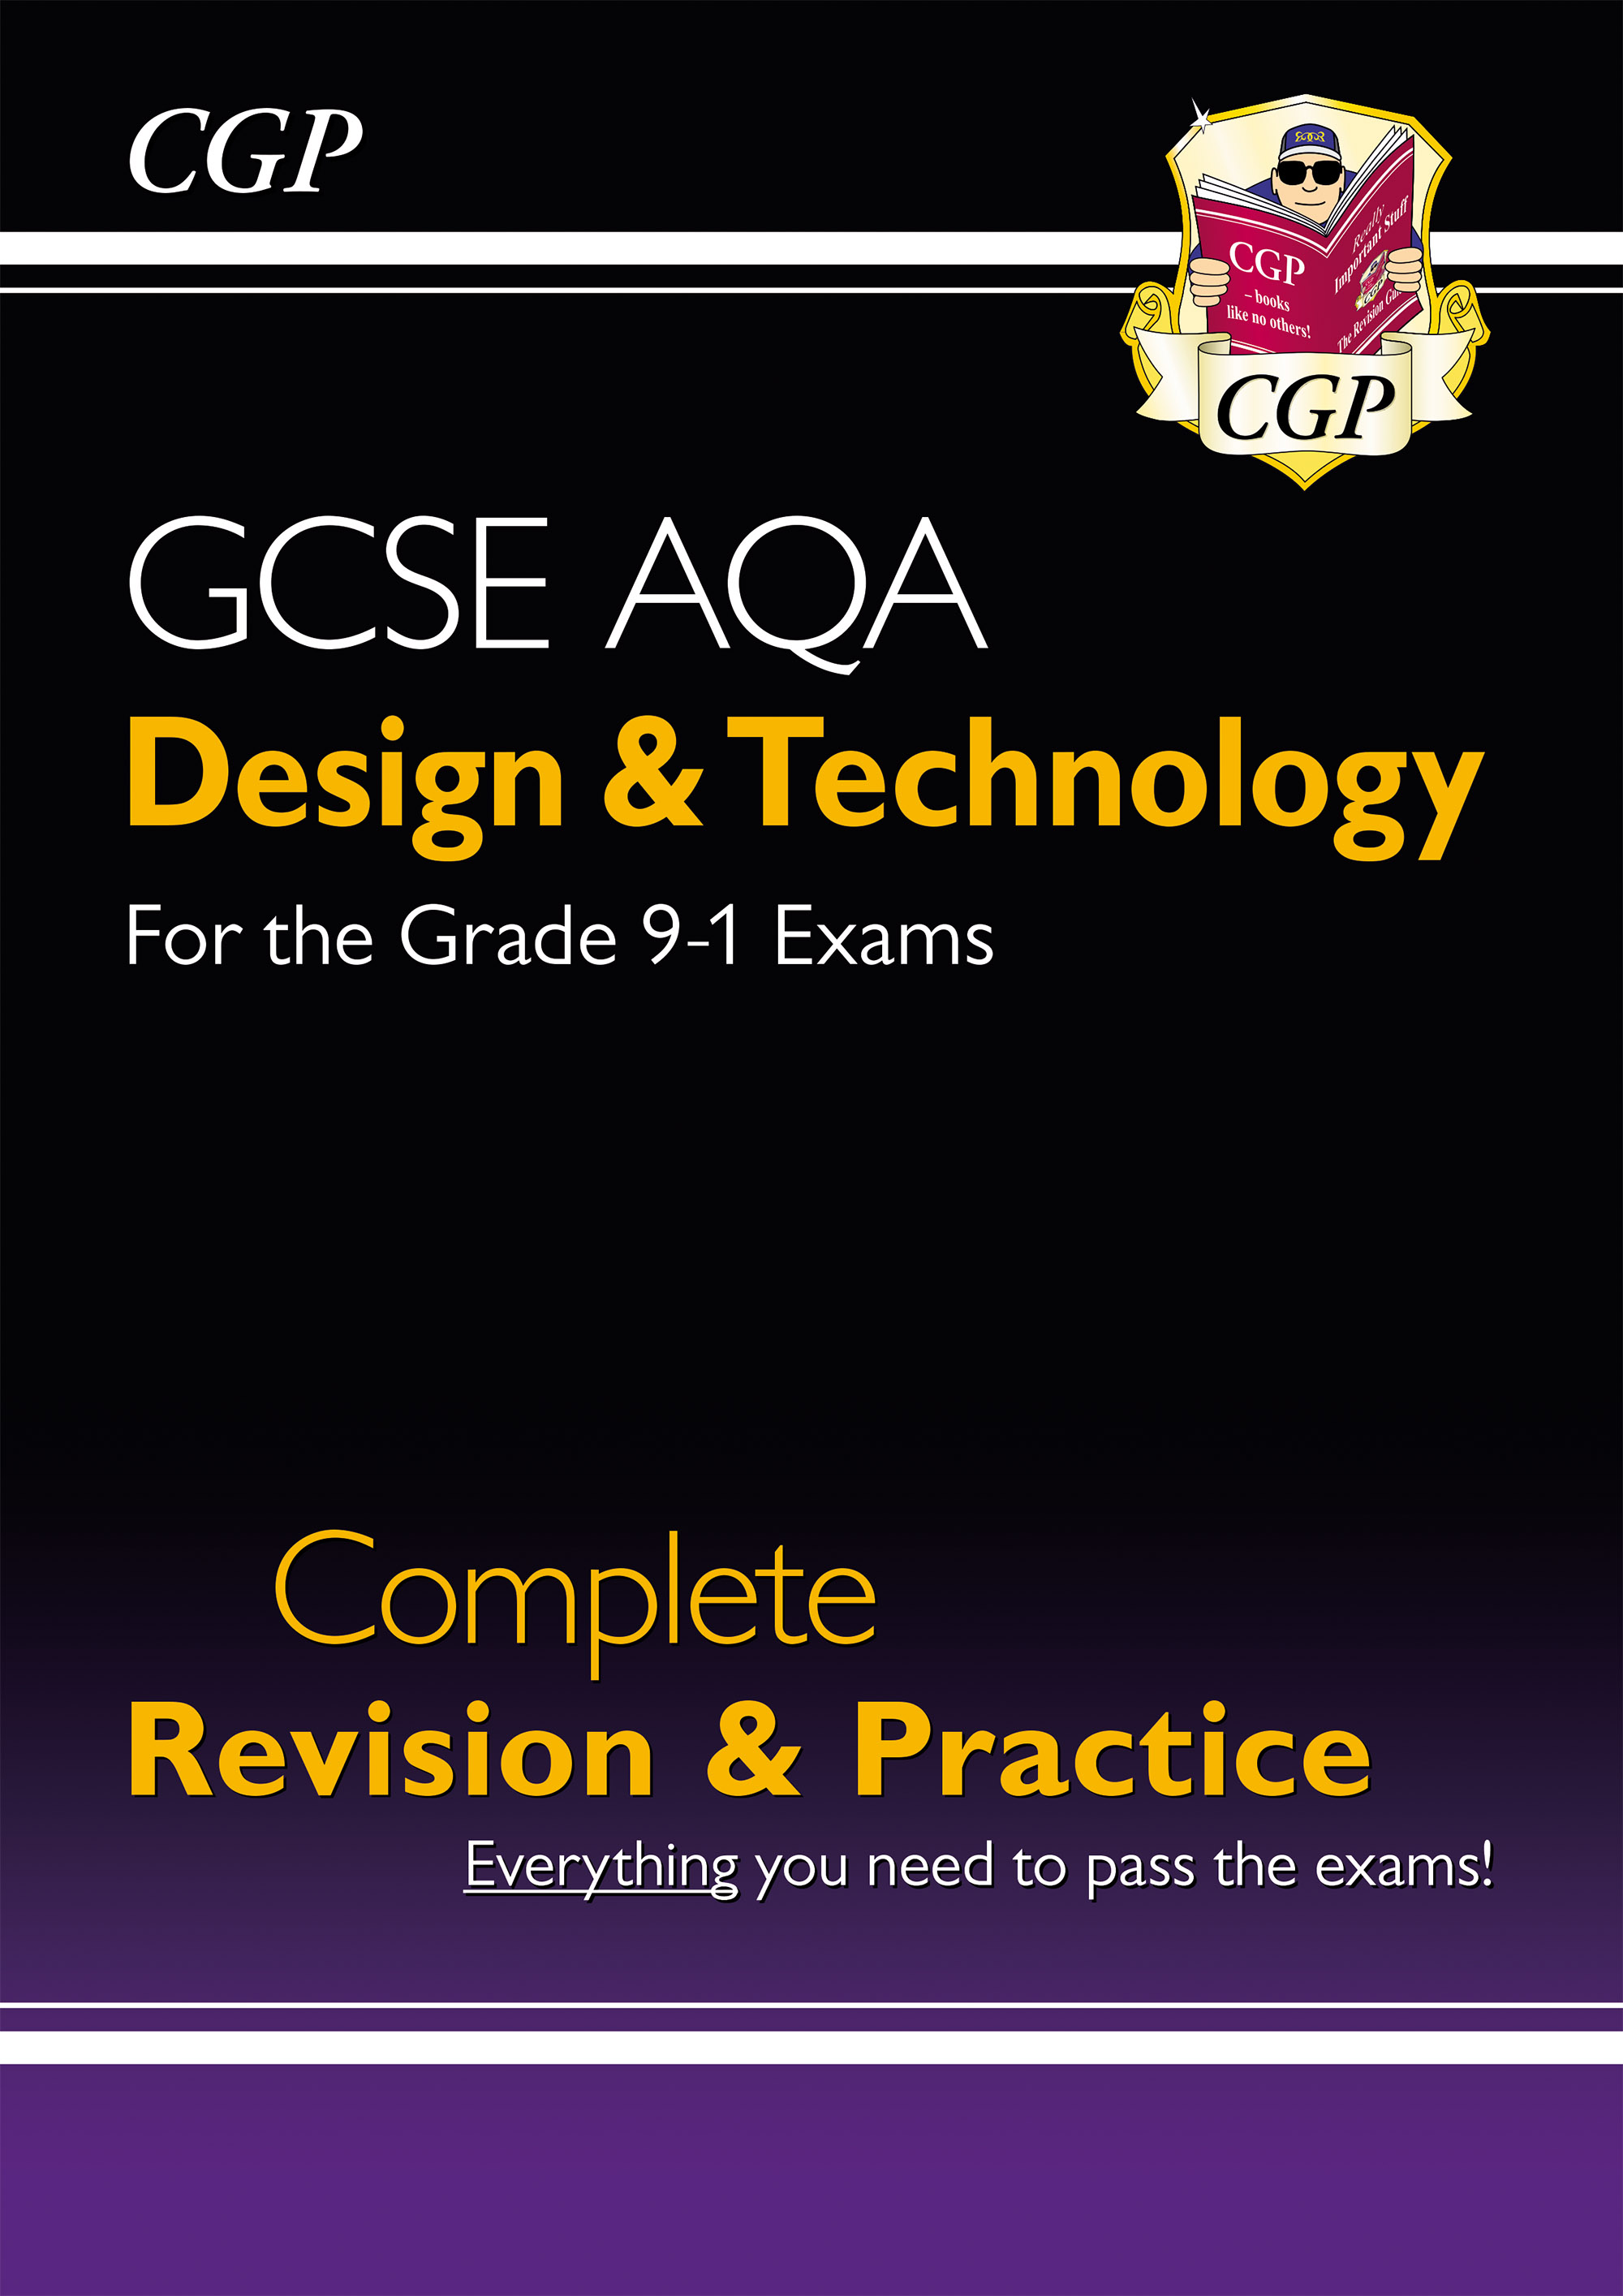 TAS41DK - New Grade 9-1 Design & Technology AQA Complete Revision & Practice